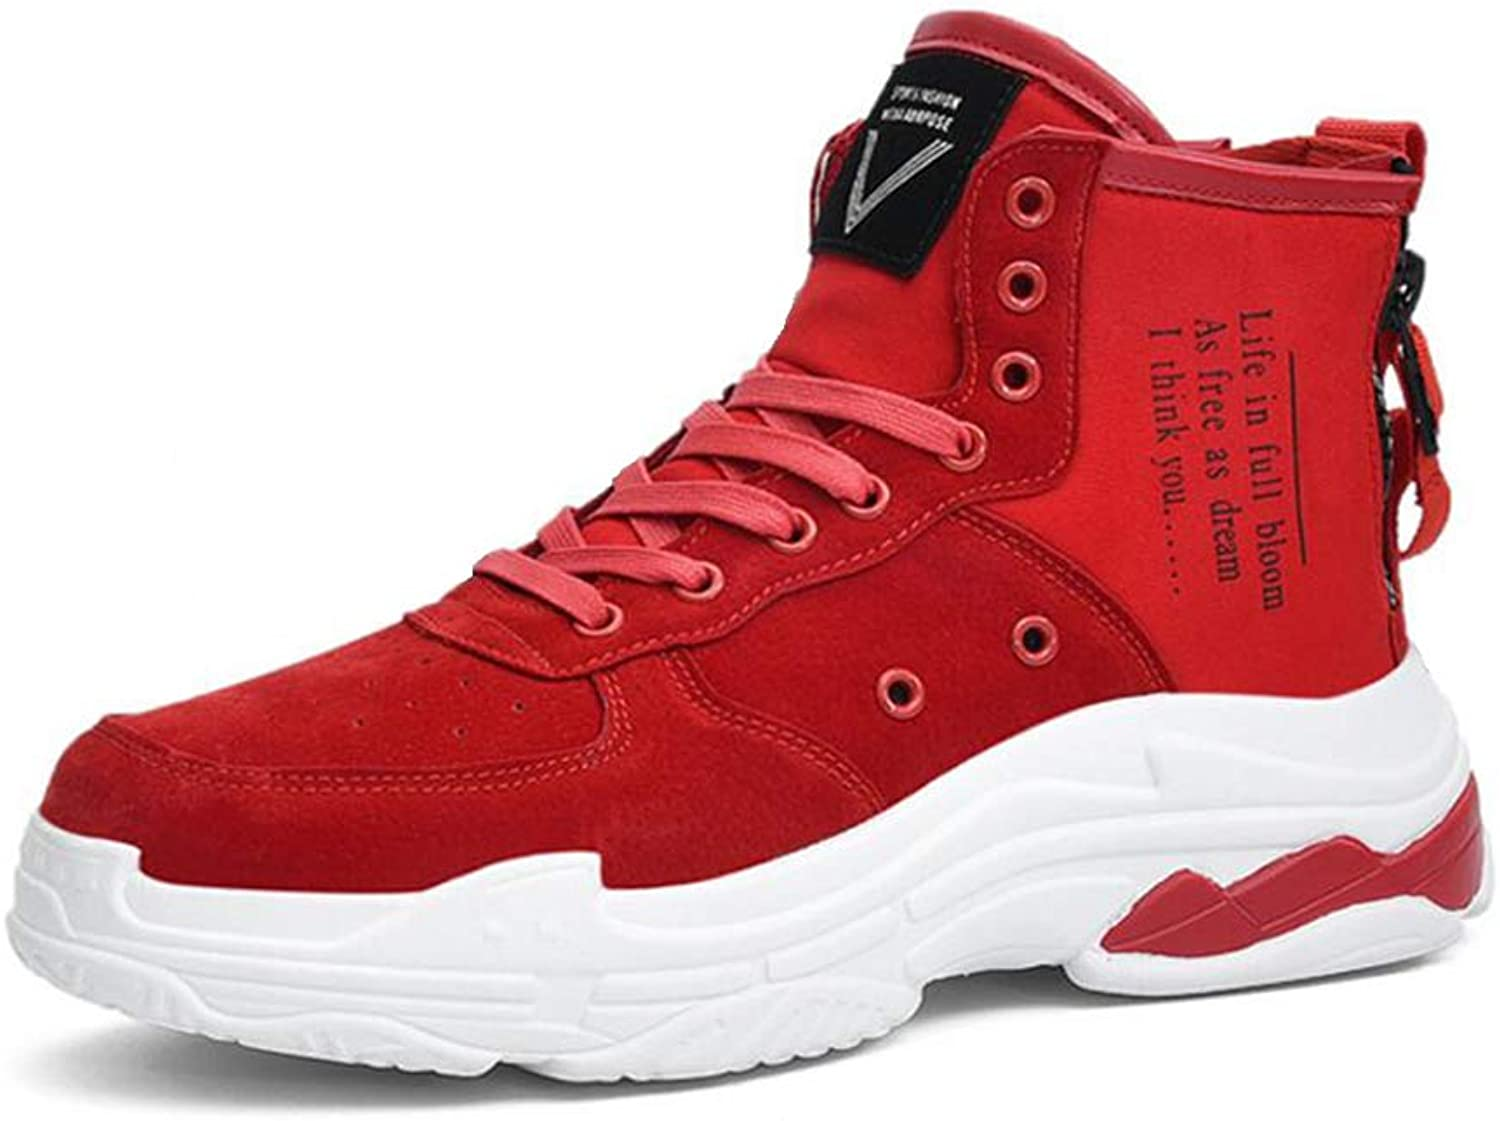 TD Road Running Casual shoes Casual shoes New Spring And Autumn Men's shoes High shoes Men's shoes Casual shoes Men (color   RED, Size   EU39 UK6 CN39)